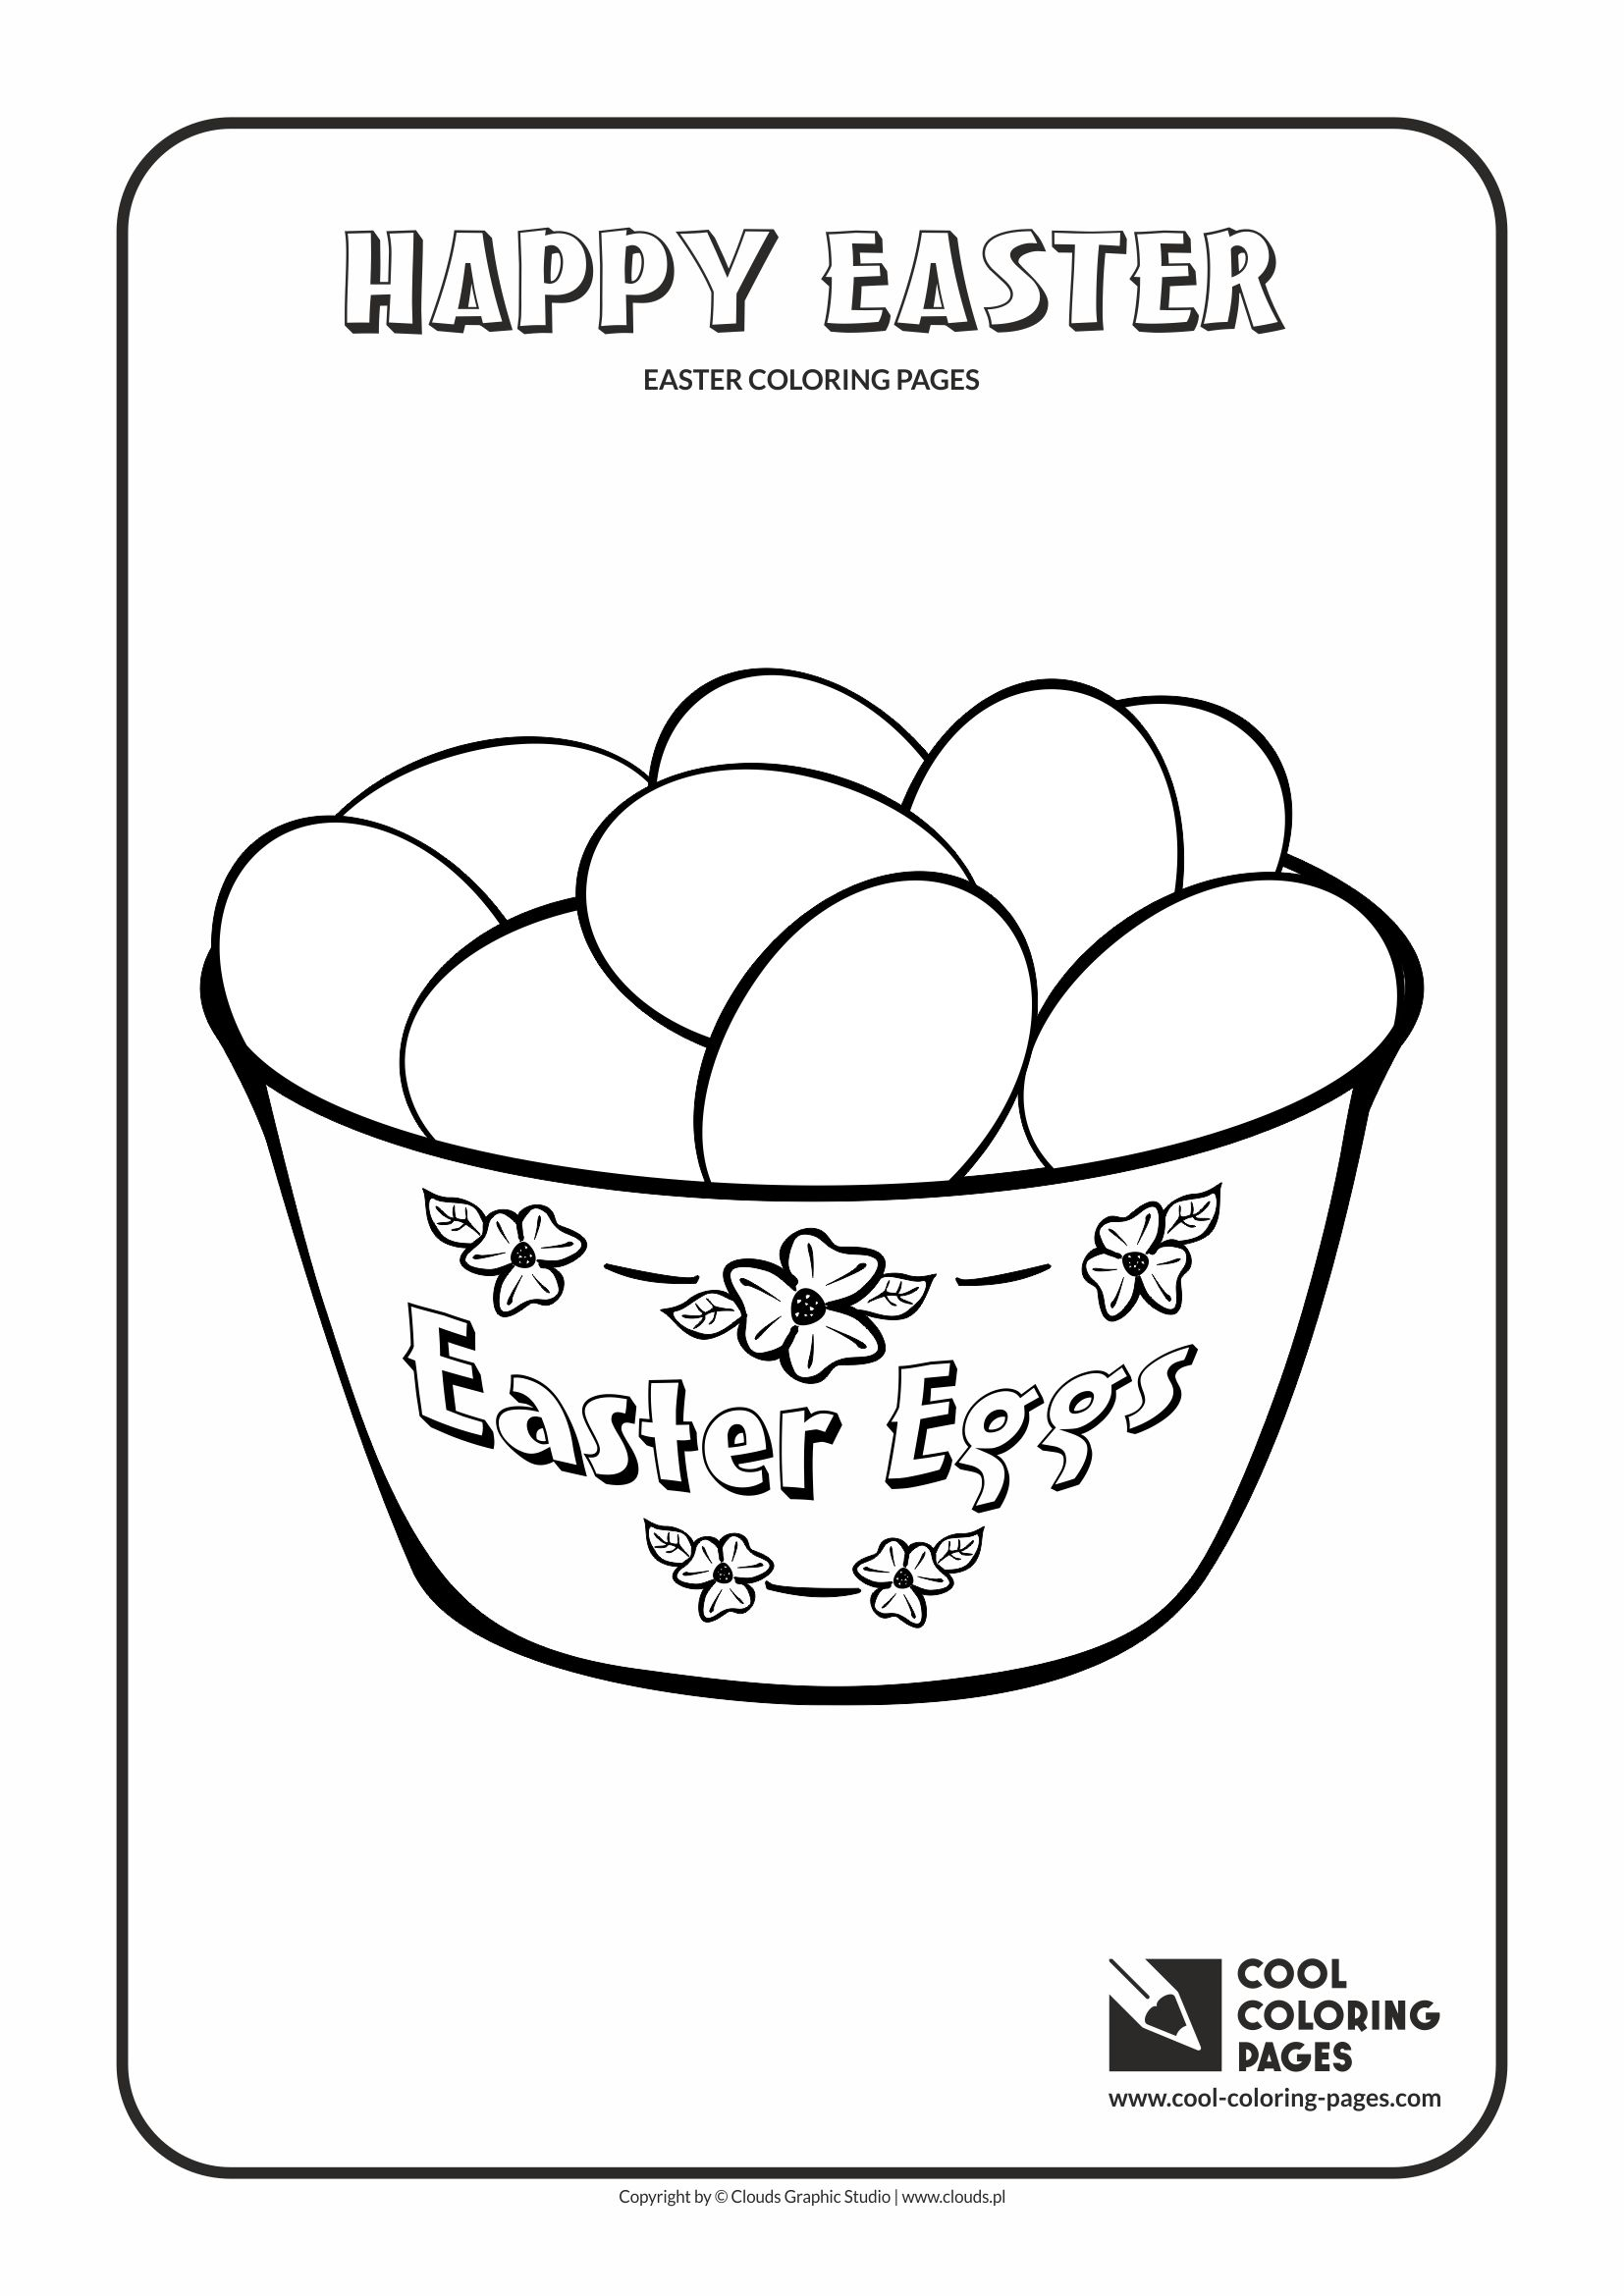 Cool Coloring Pages Easter coloring